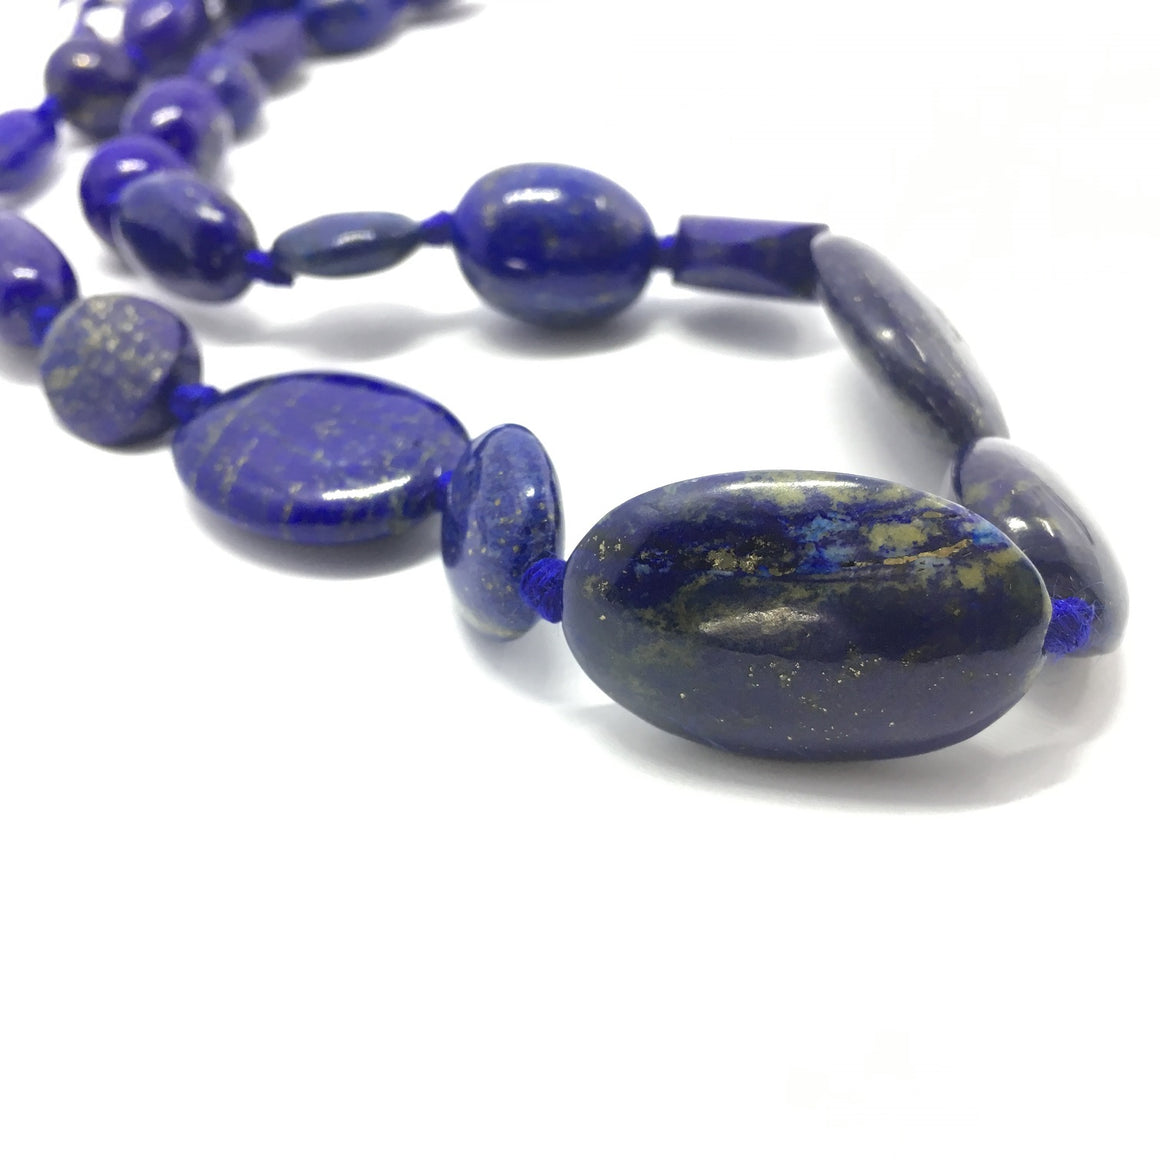 Lapis Lazuli Necklace - Lapis Necklace 25 Oval Beads - 521.5 0 ct